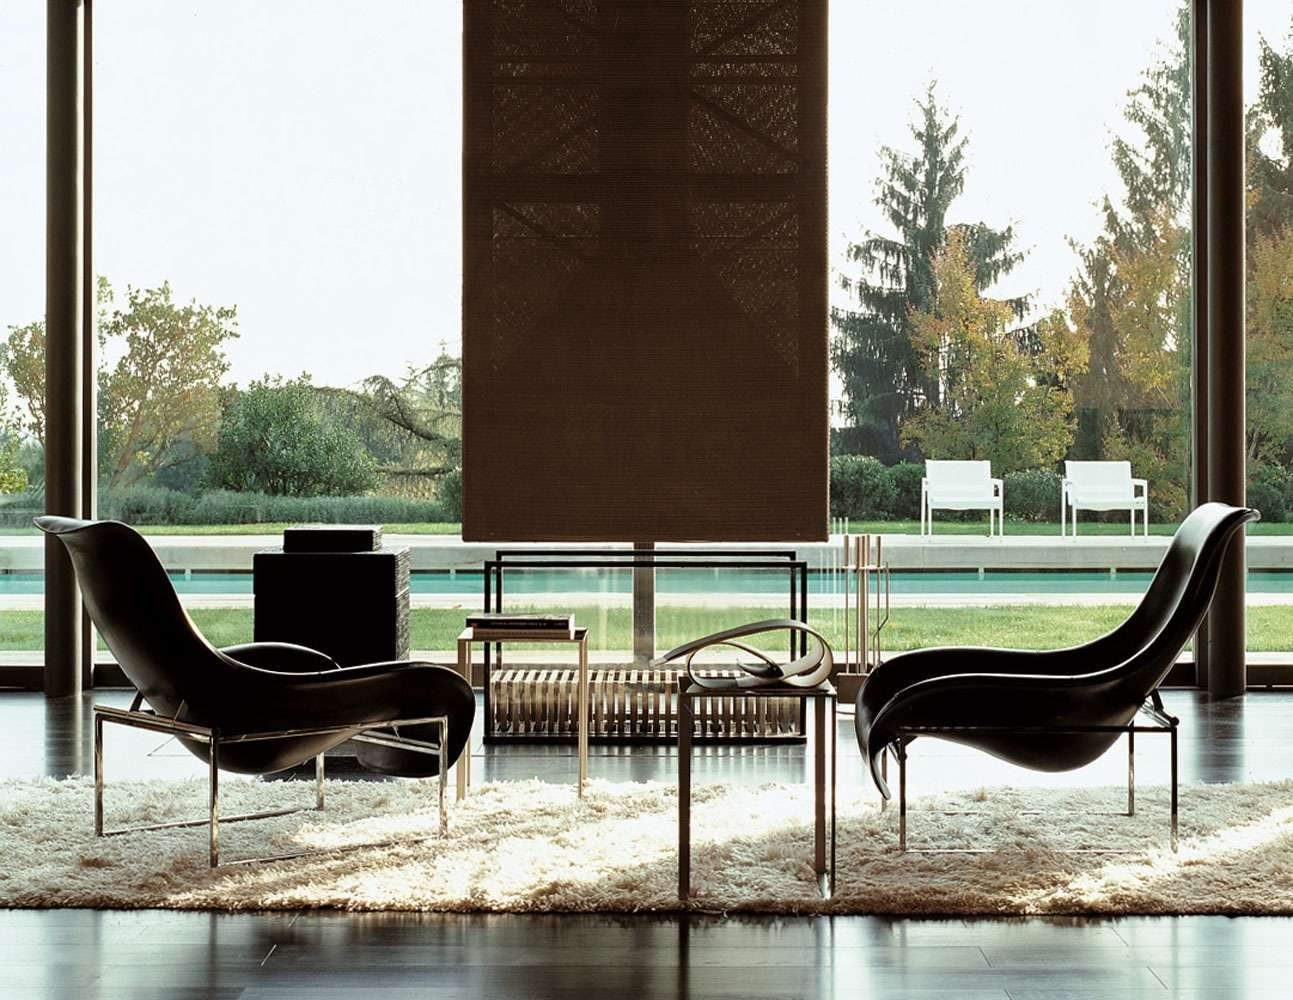 - A product with a strong personality, Mart has a silhouette imprinted to convey the idea of relaxation.